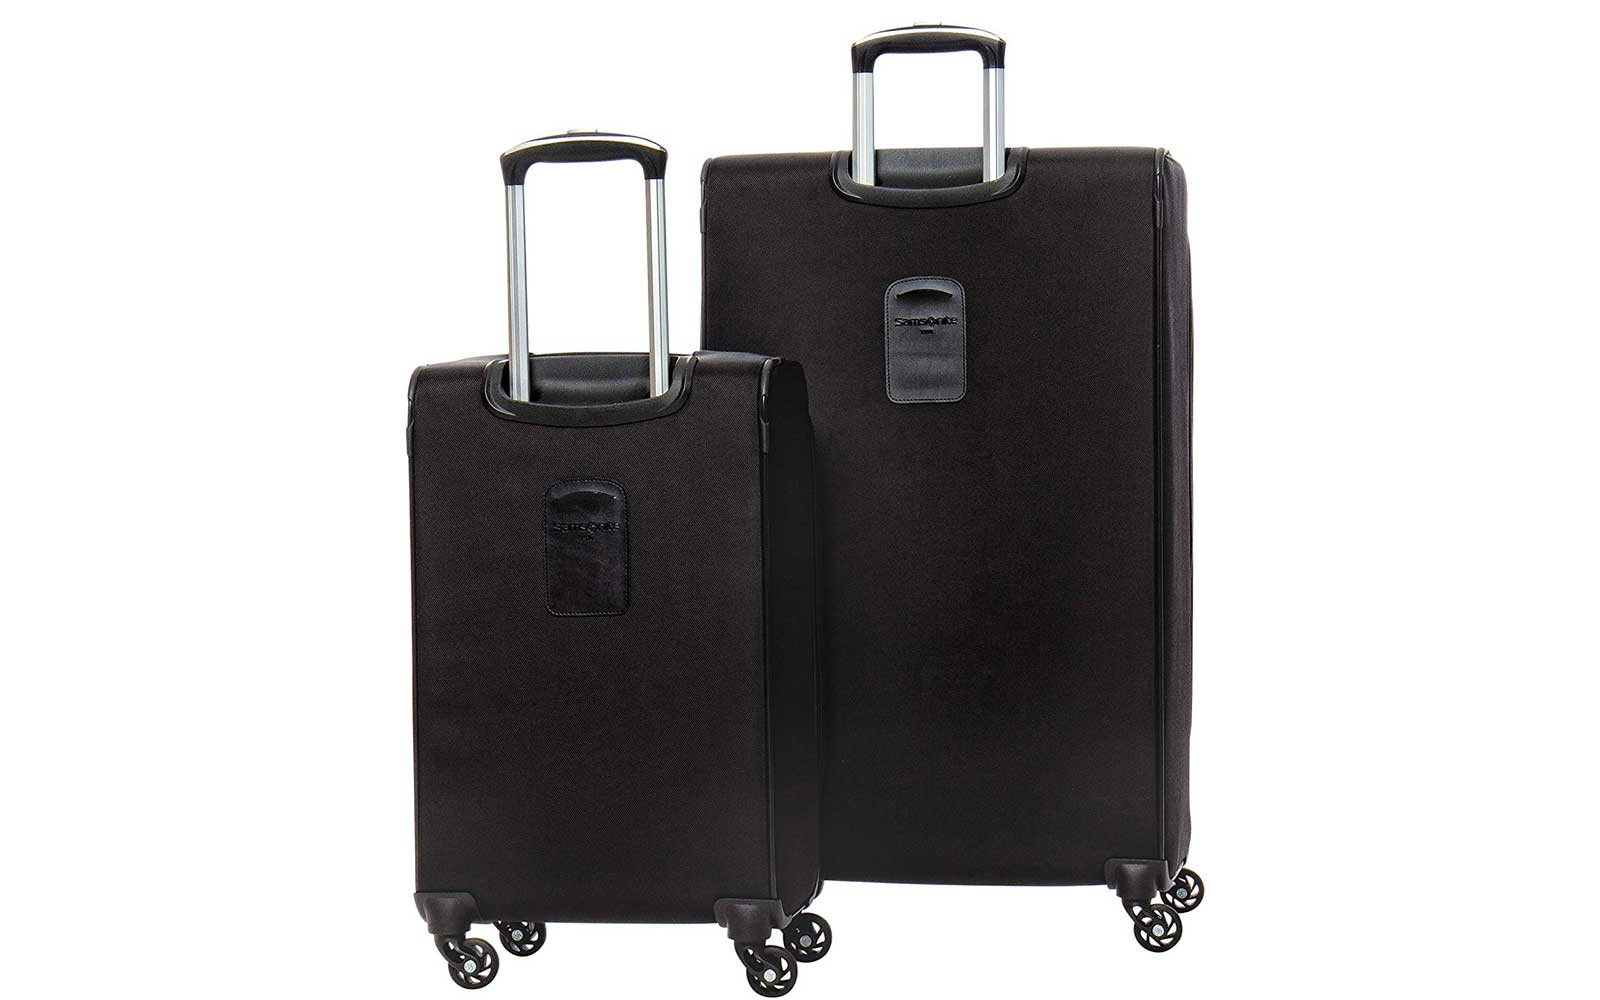 Black Samsonite Suitcase